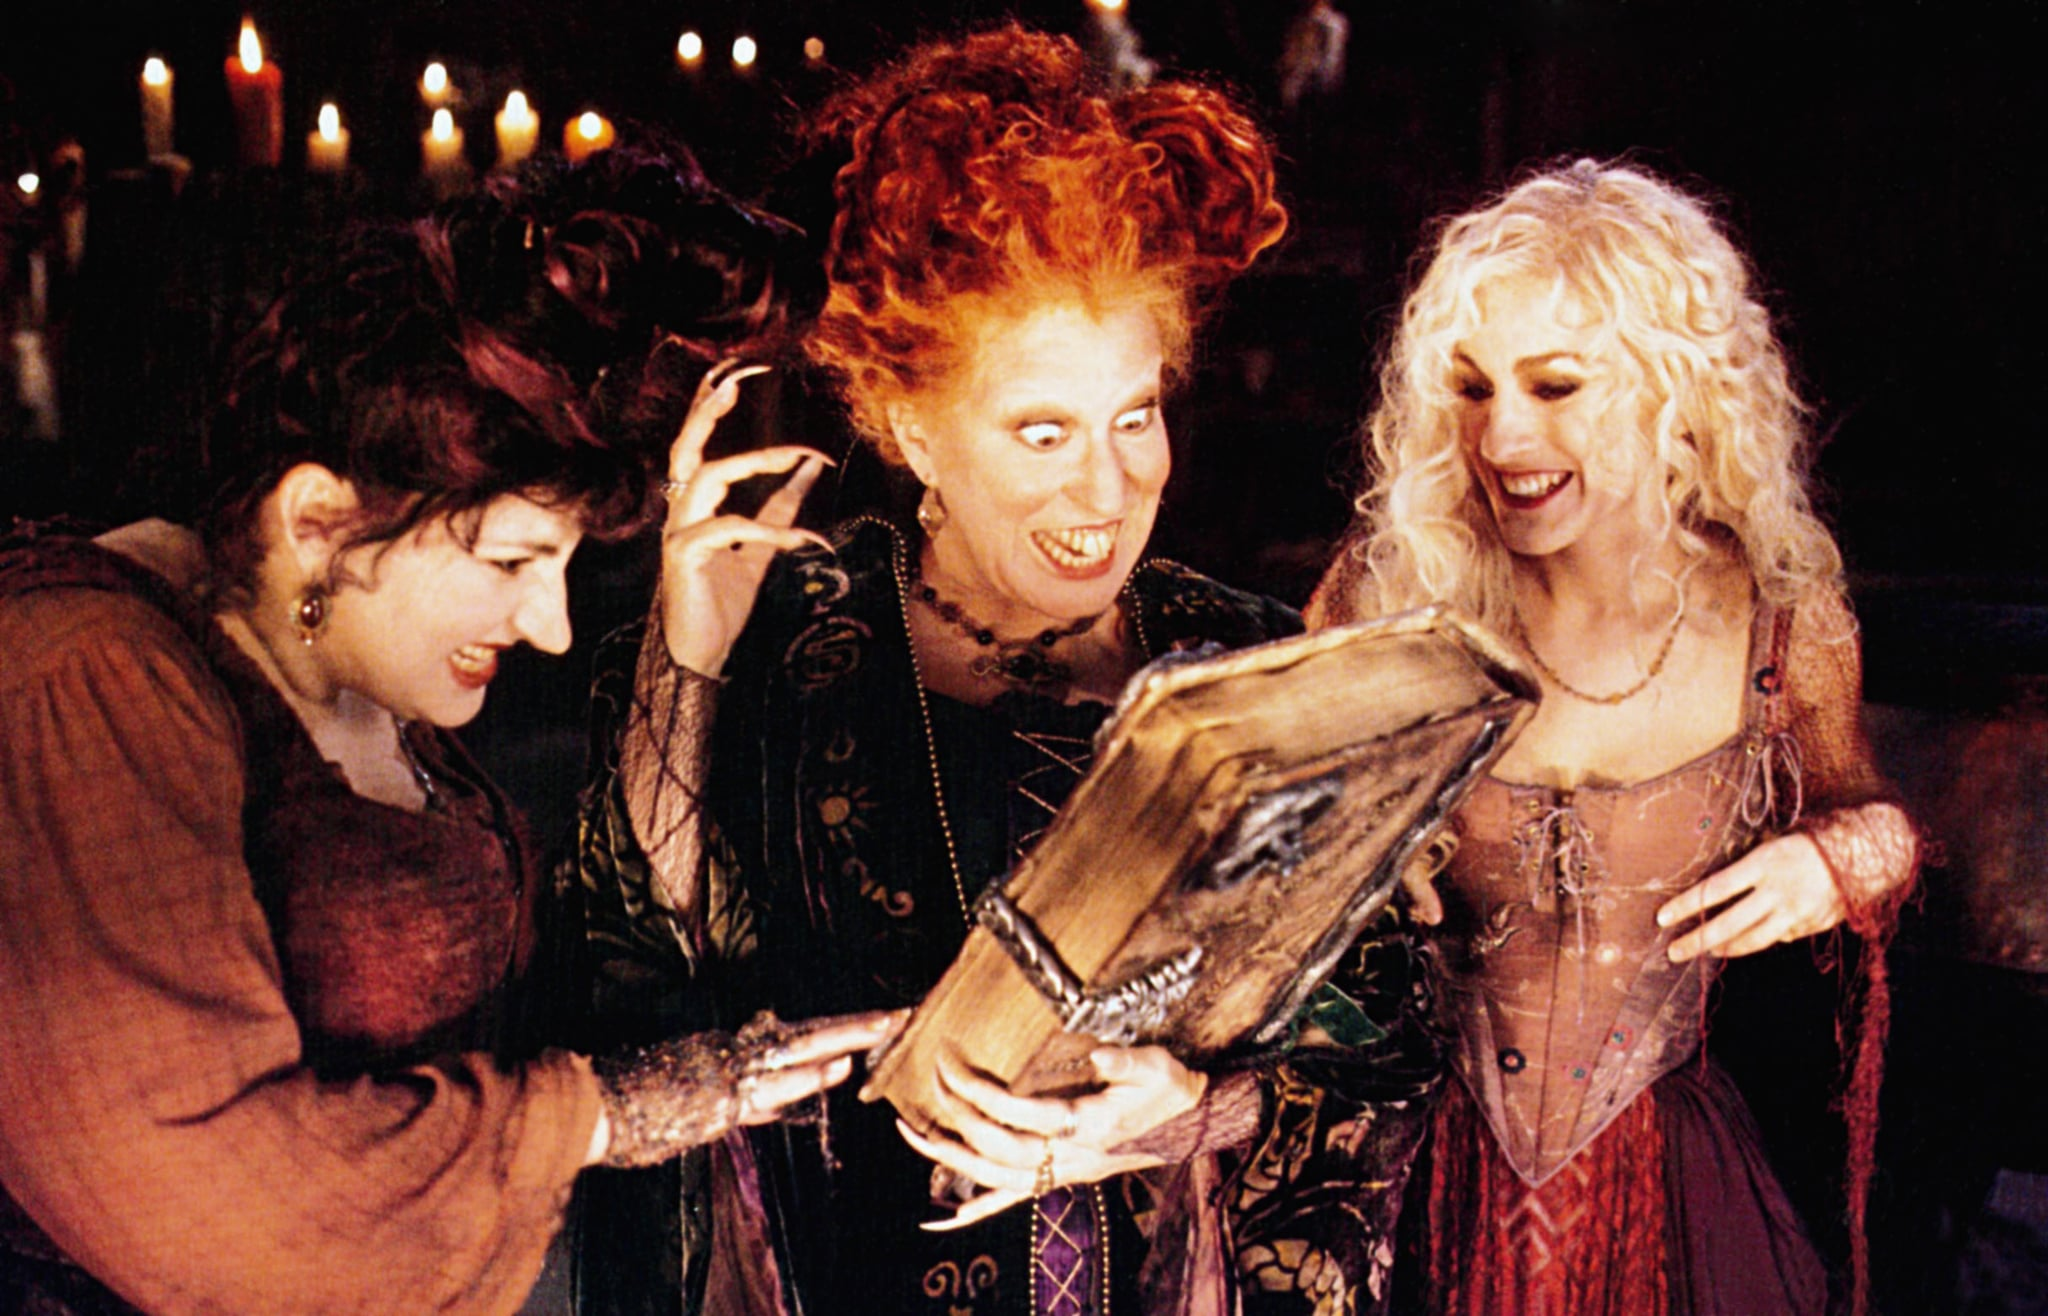 HOCUS POCUS, from left: Kathy Najimy, Bette Midler, Sarah Jessica Parker, 1993,  Buena Vista/courtesy Everett Collection